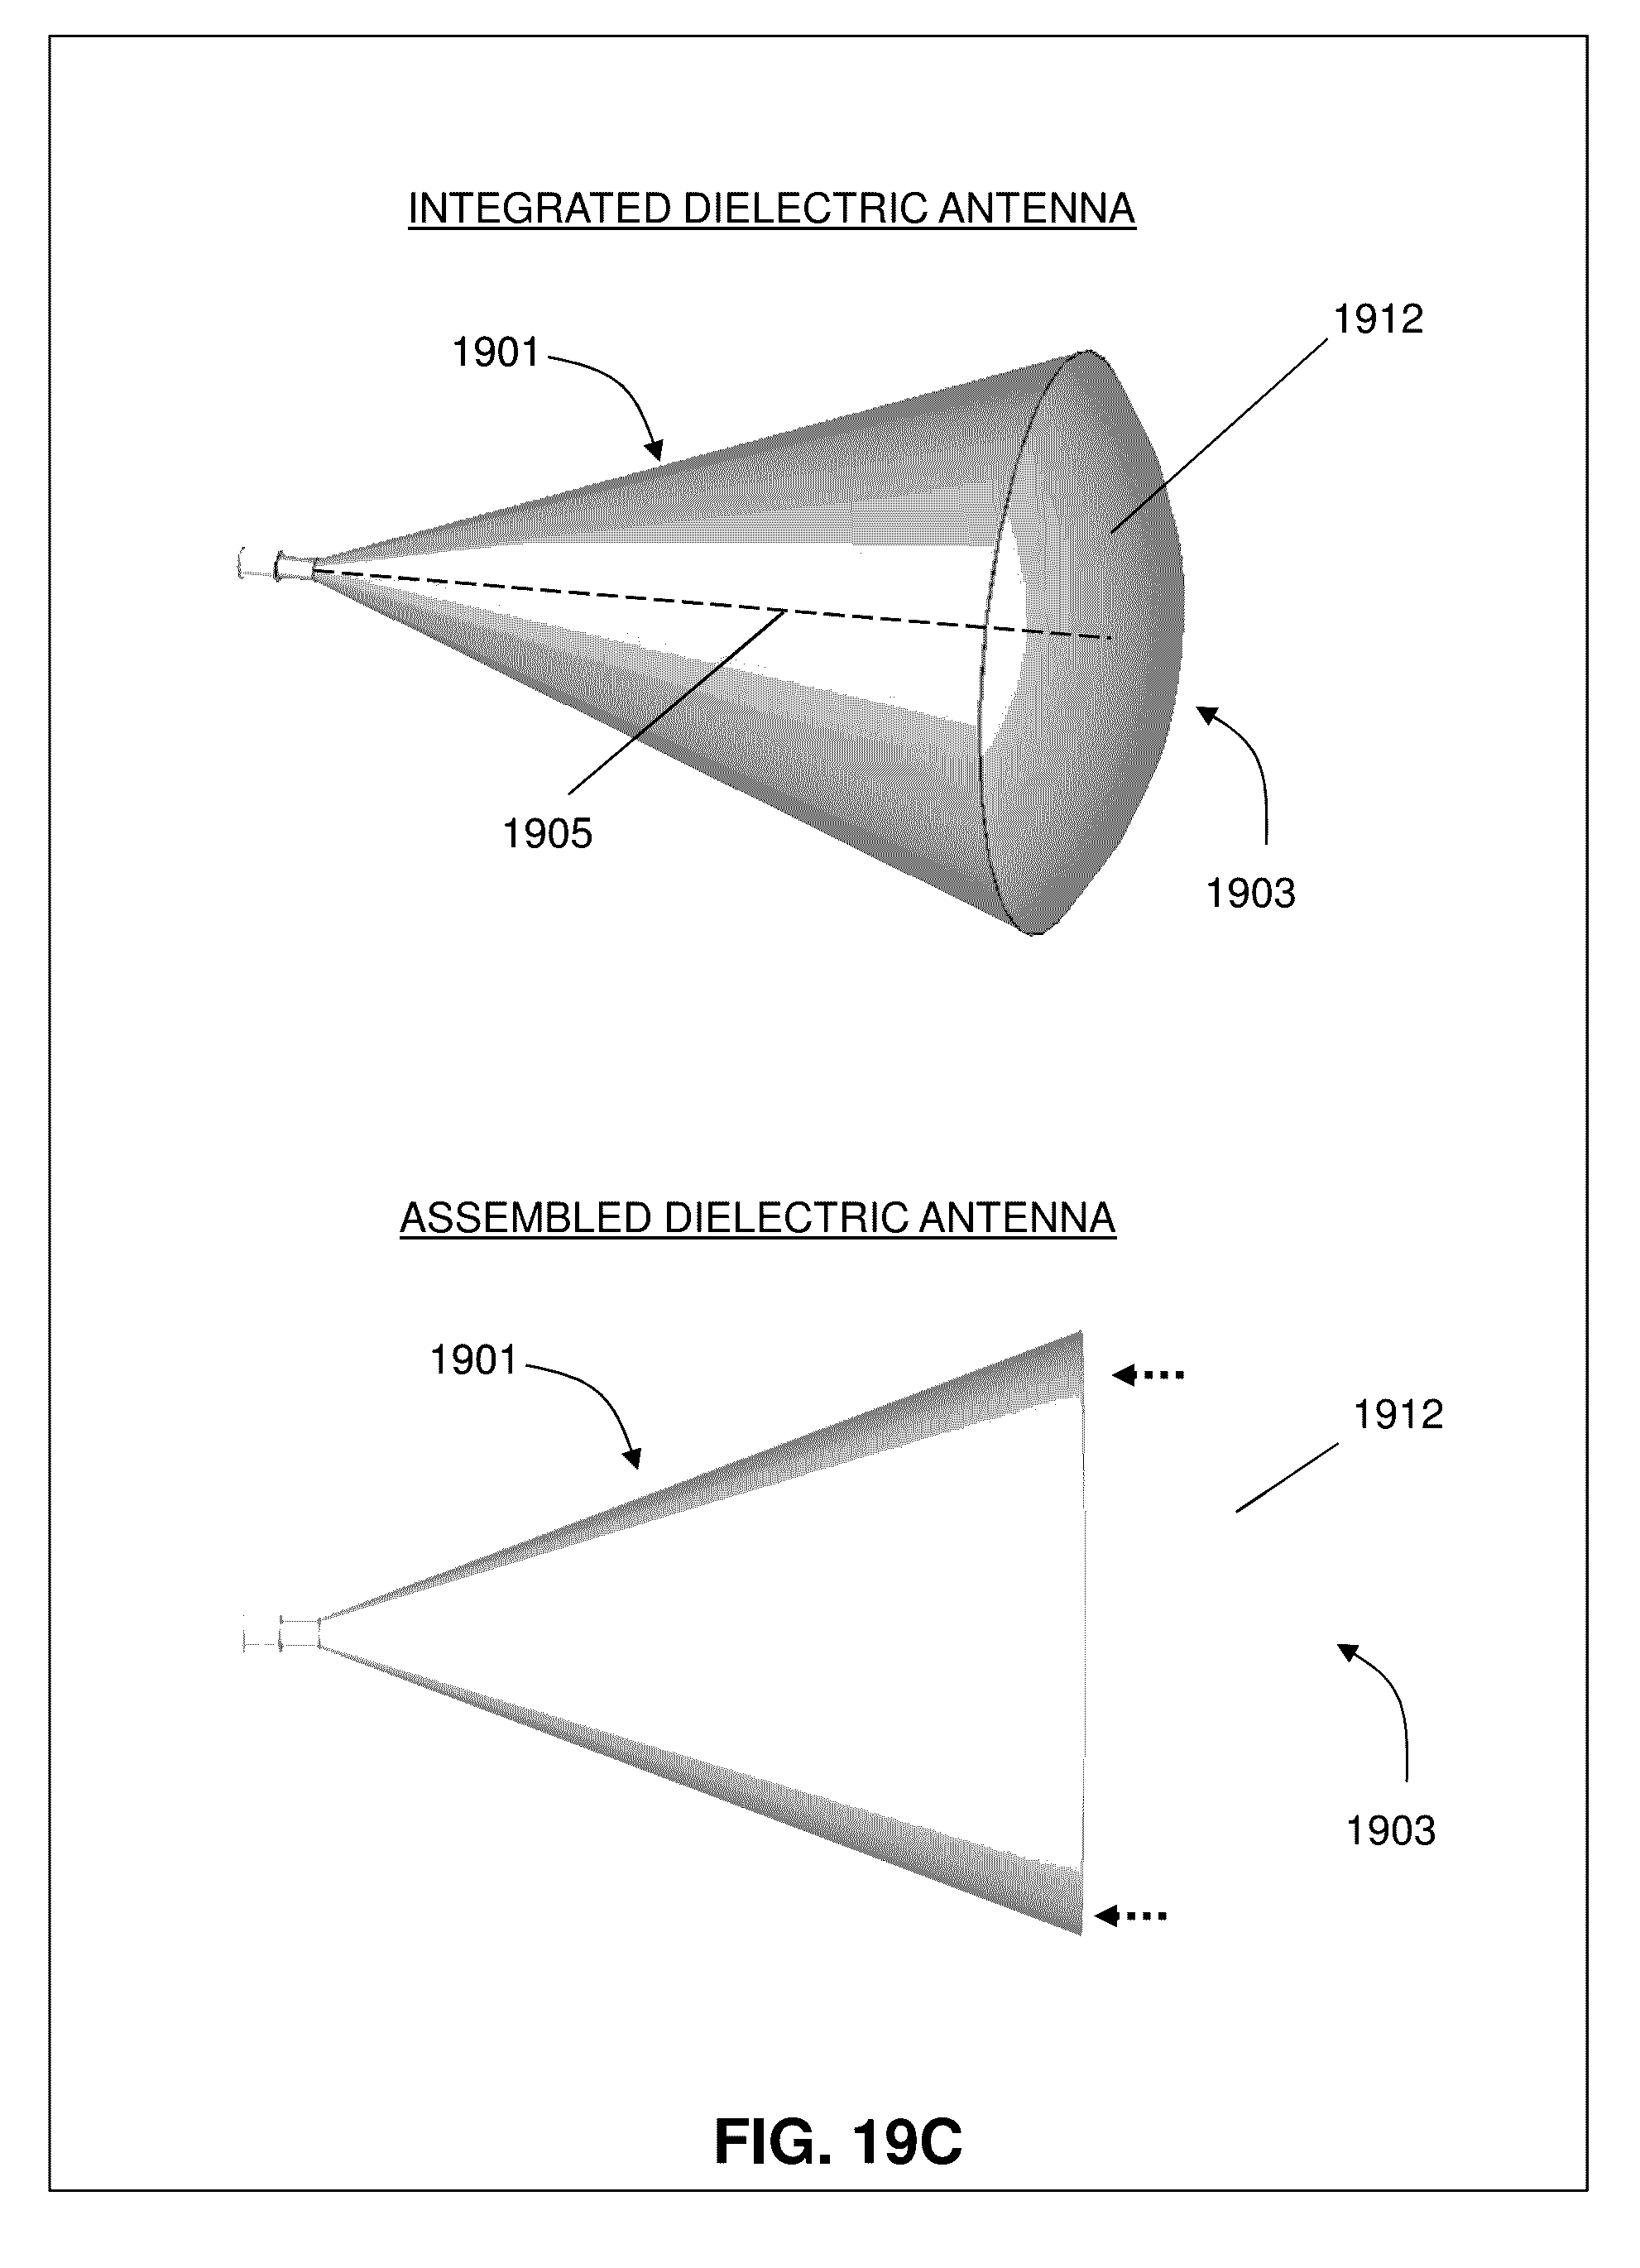 Us20170019131a1 Method And Apparatus For Coupling An Antenna To A Harada Power Wiring Diagram Device Google Patents